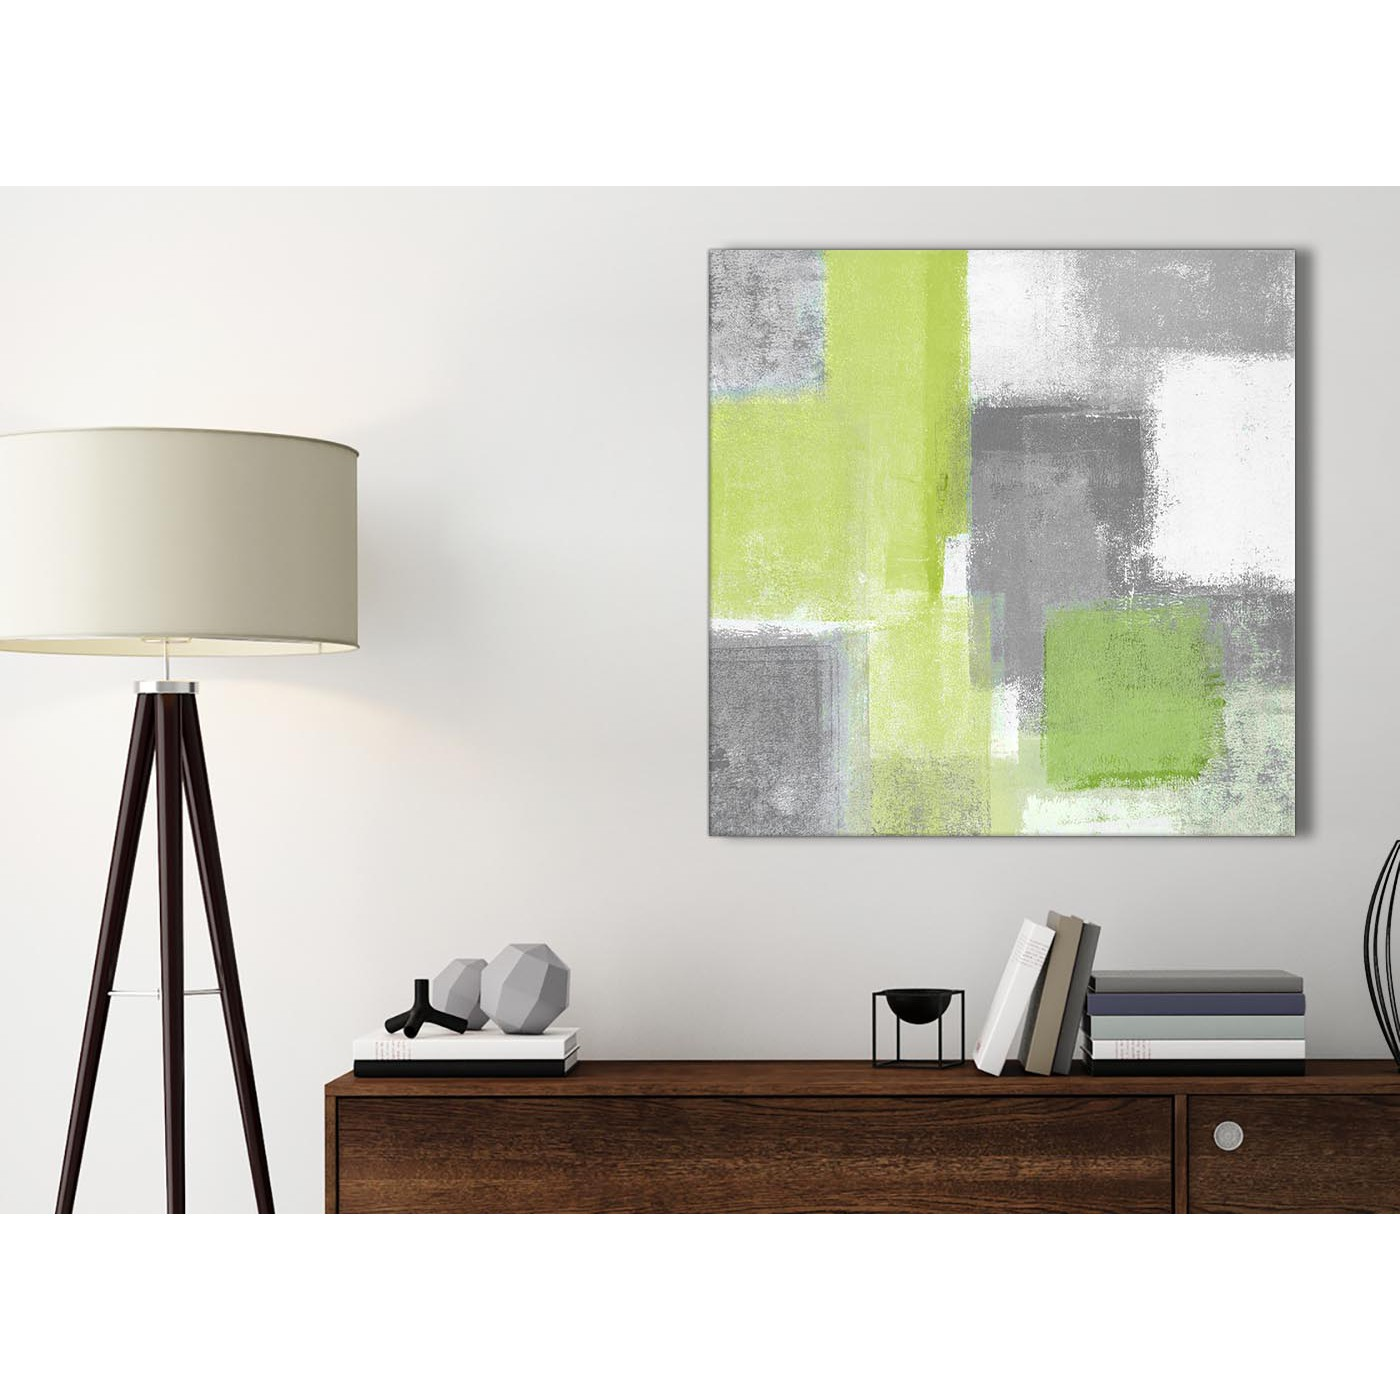 Lime Green Grey Bathroom Canvas Pictures Accessories Abstract 1s369s 49cm Square Print